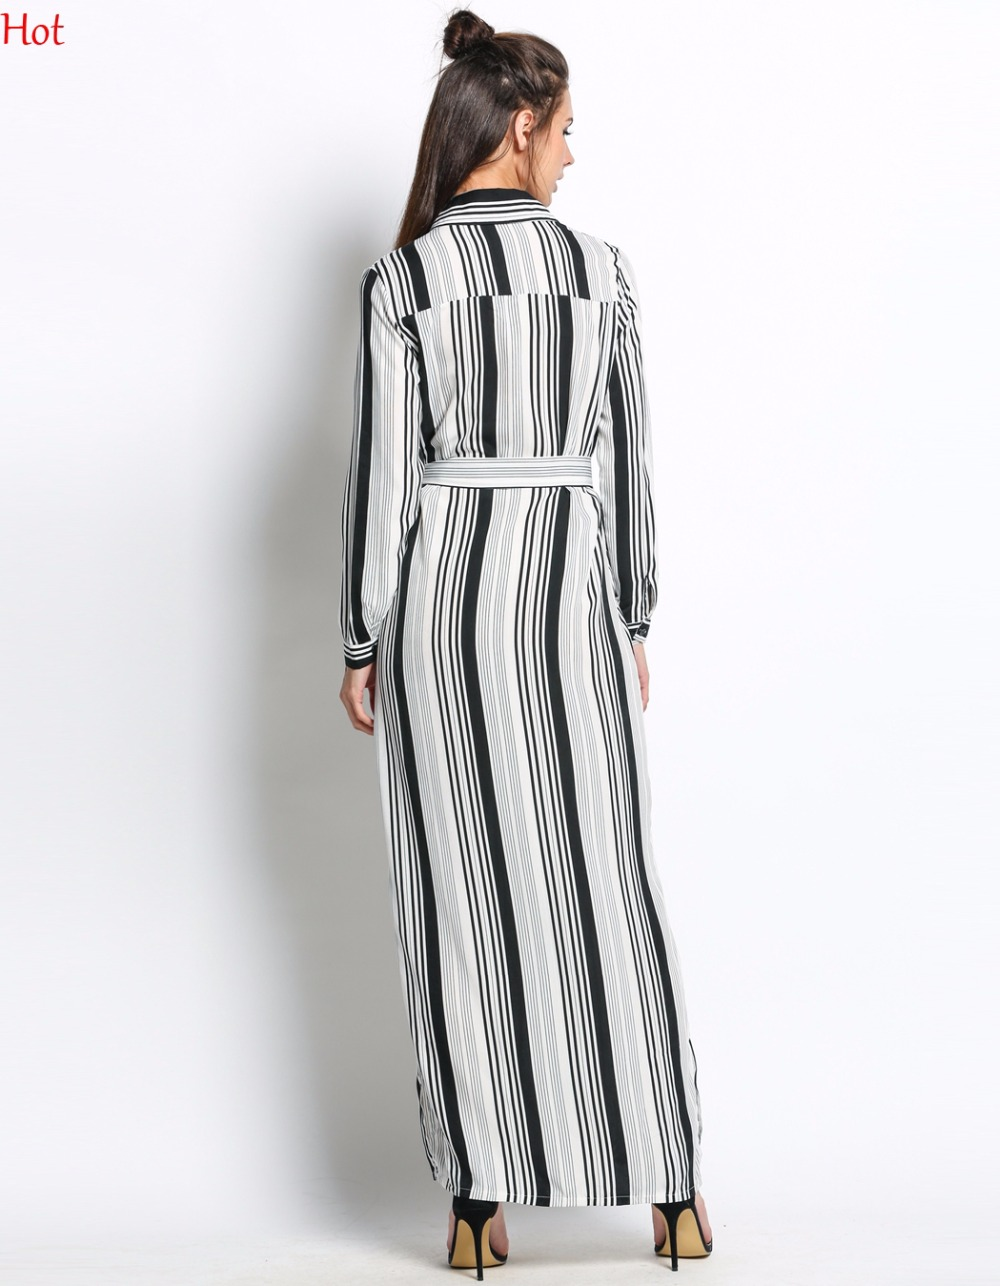 Hot Black White Striped Maxi Shirt Dress Long Sleeve Elegant Button Party  Dresses High Split Sexy Tie Waist Tunic Dress SV030085-in Dresses from  Women s ... c000ef9be